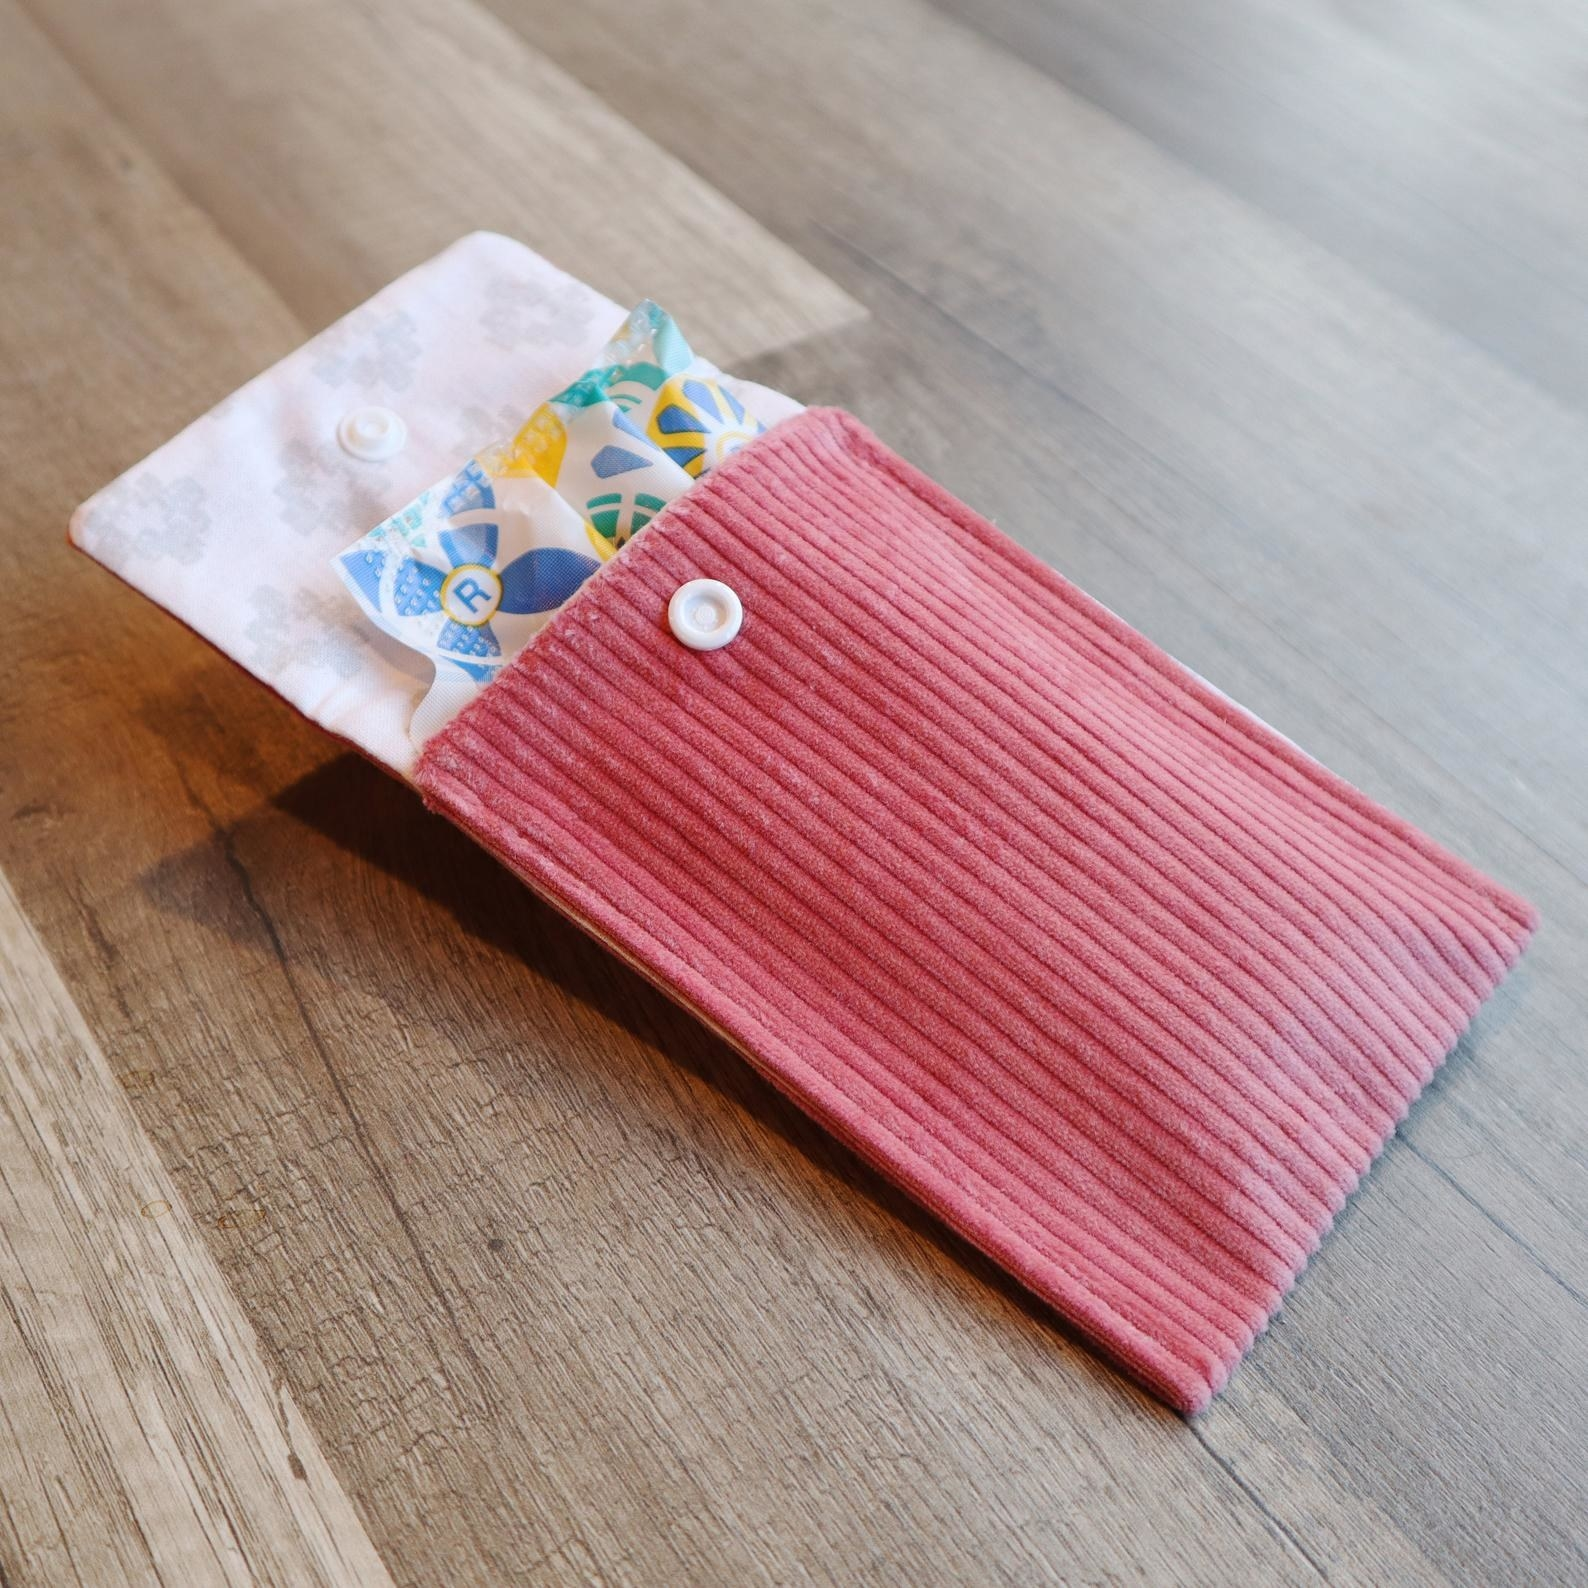 the pink curduroy tampon case